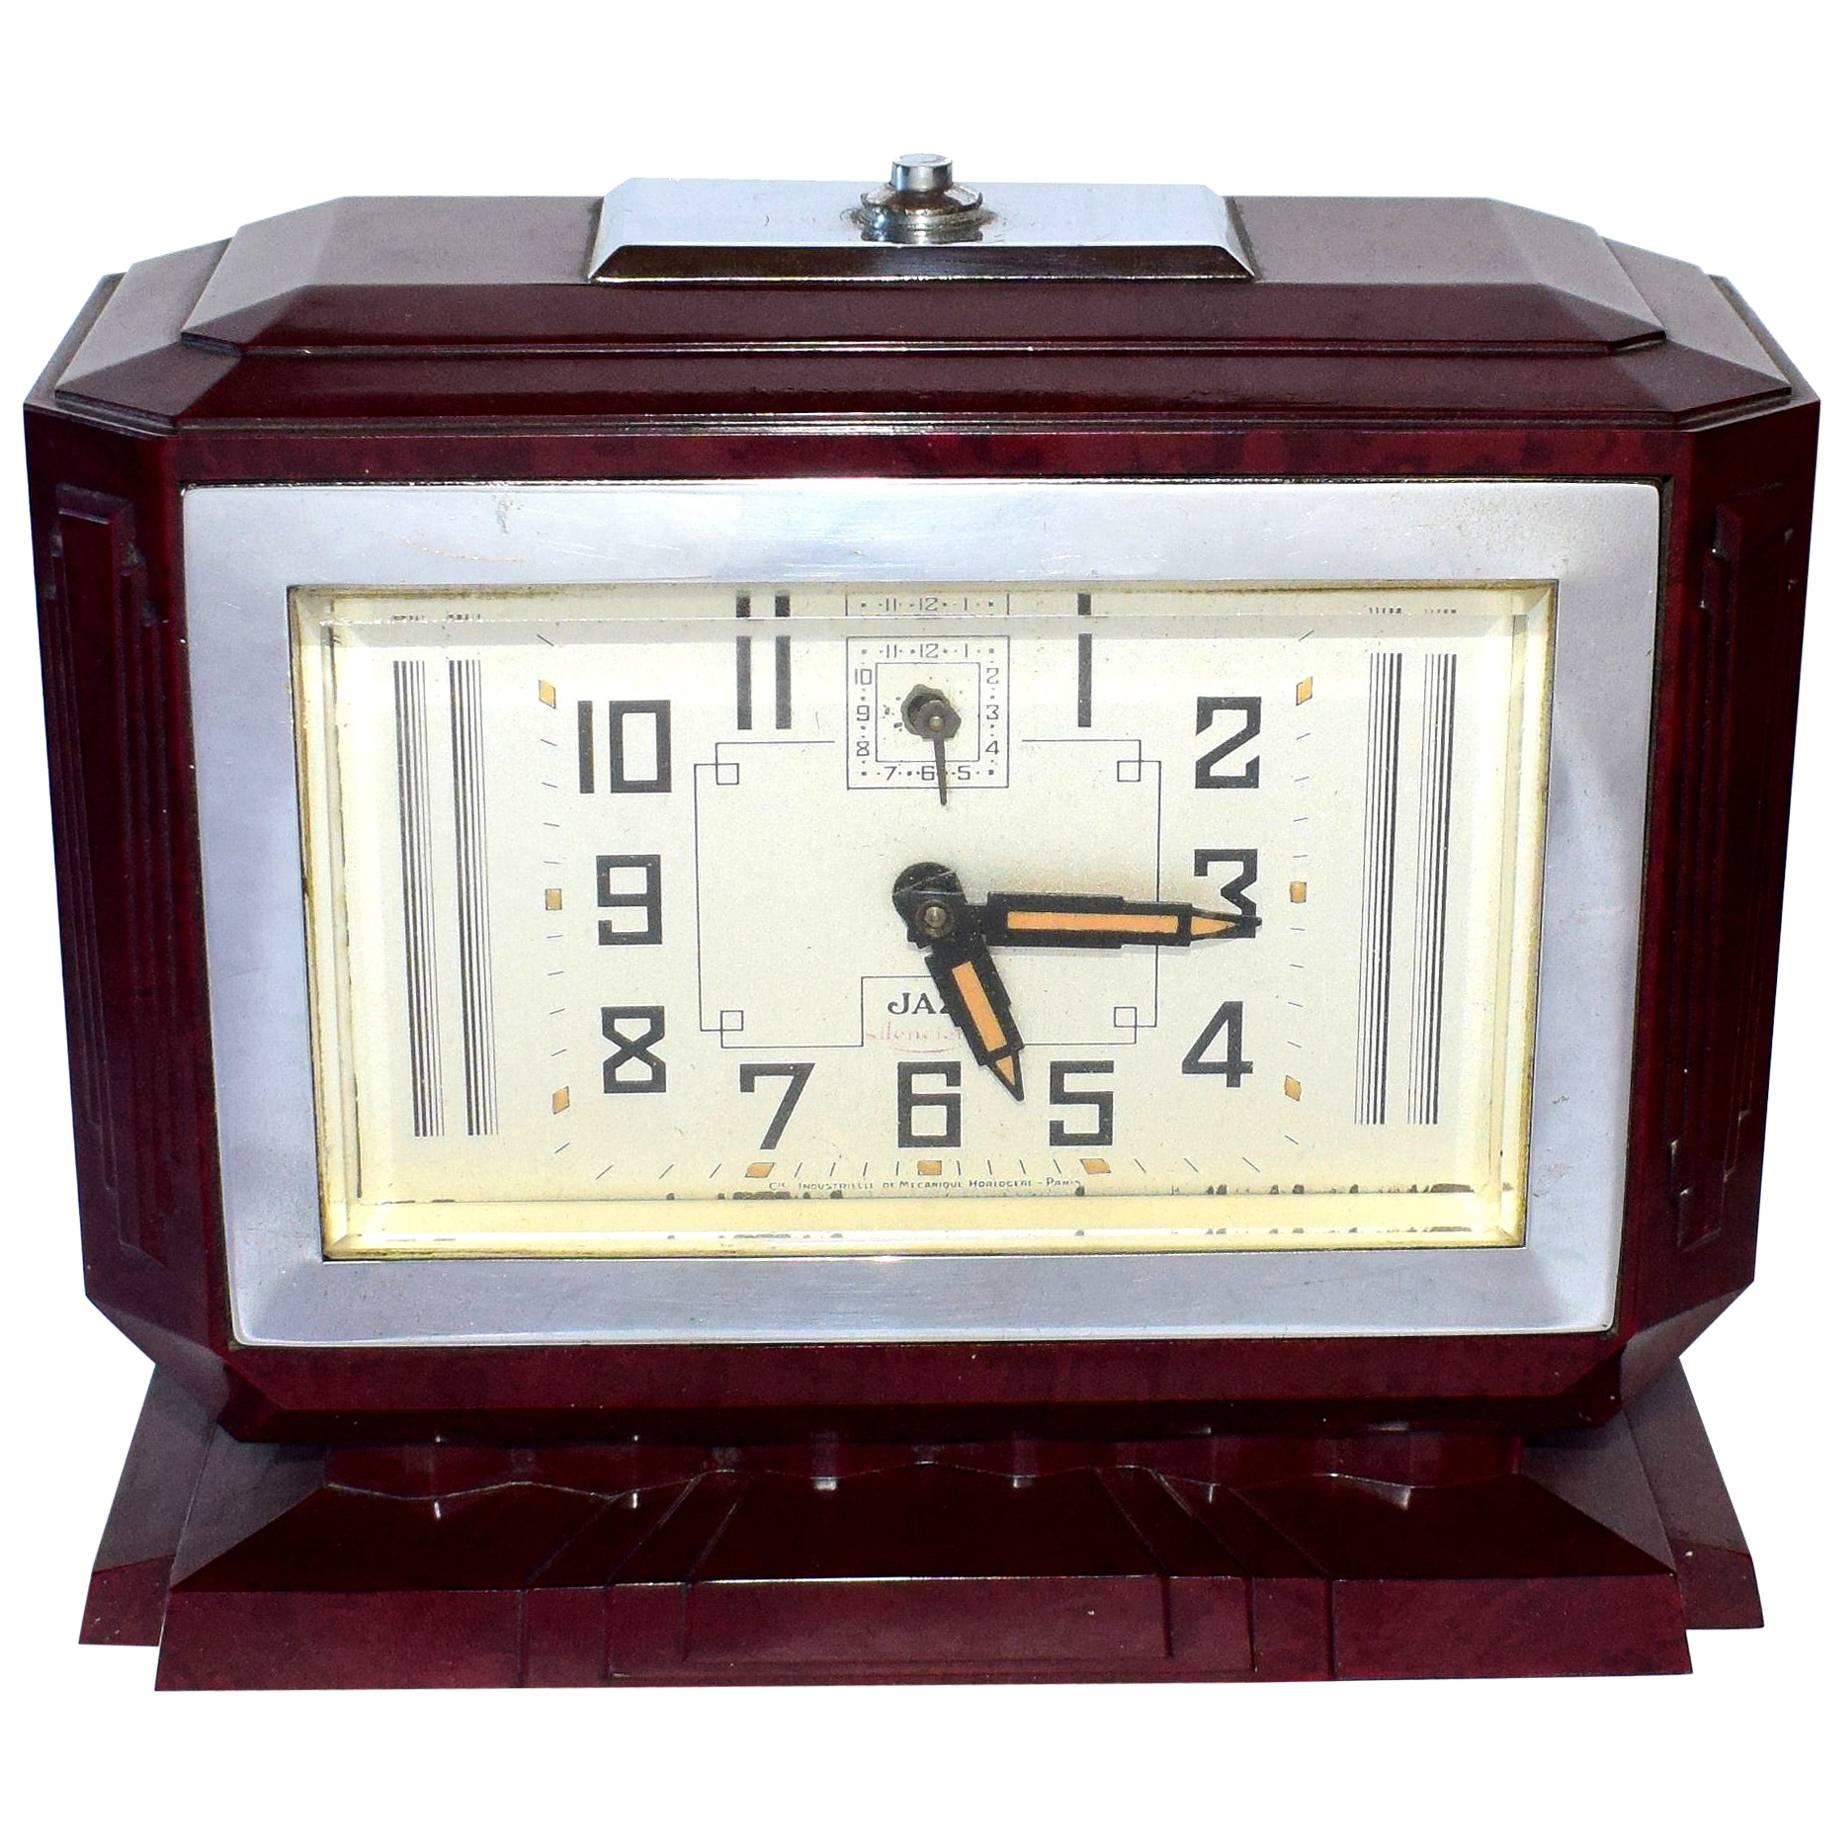 vintage french ato brillie station railway clock factory industrial double side large french art deco bakelite clock